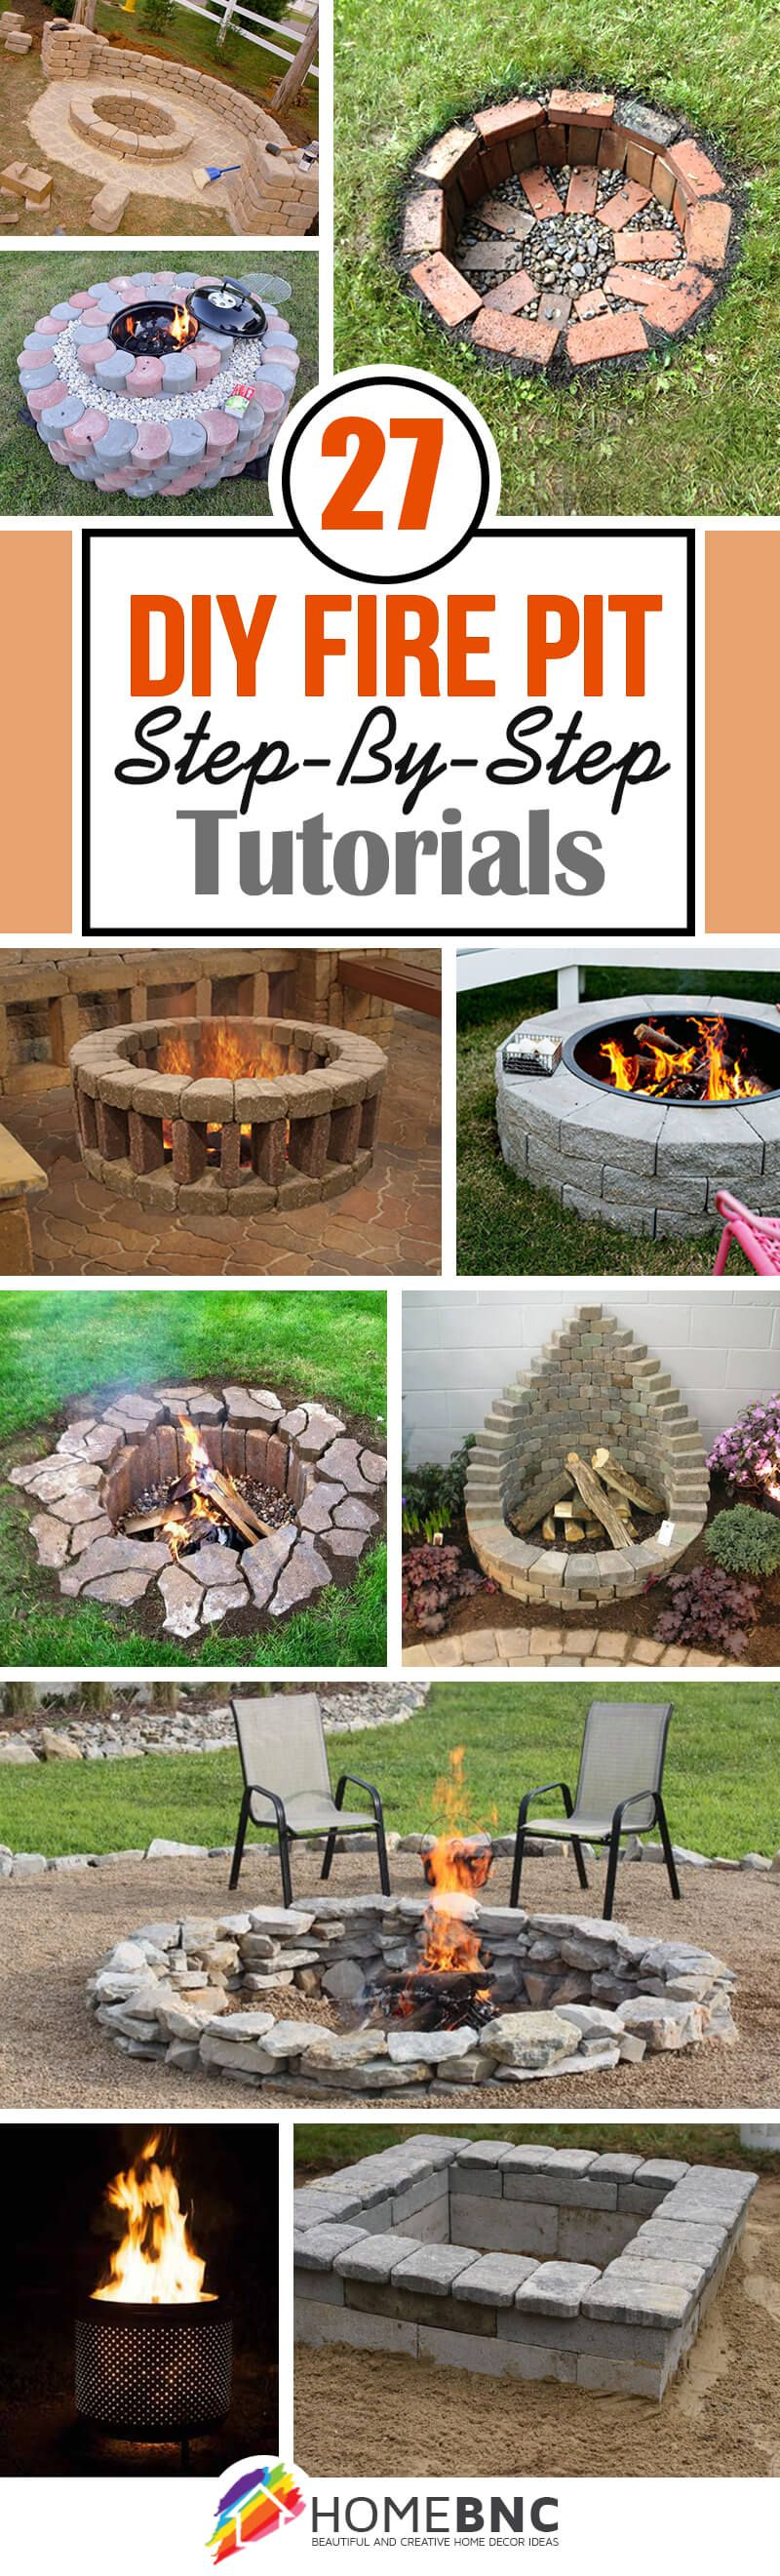 6d9346e1f517bdf28194a63b9c4247db Top Result 50 Fresh Cool Fire Pits